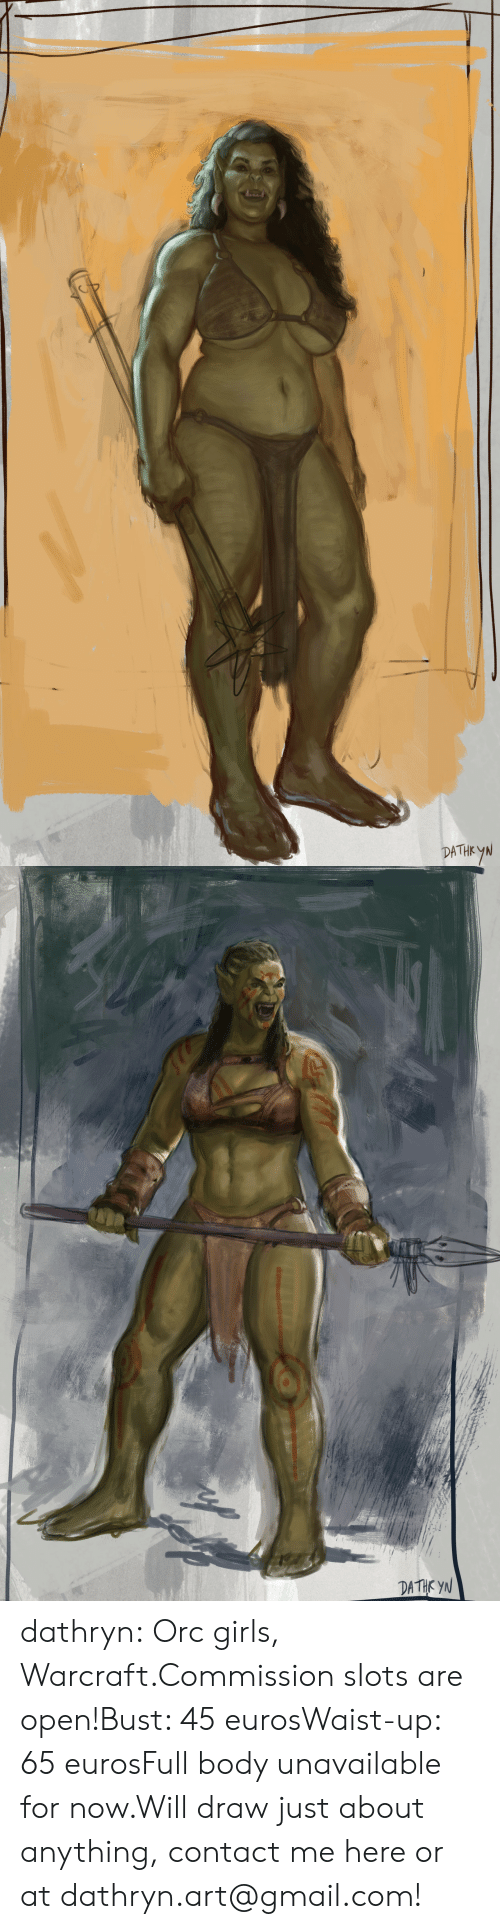 Gmail: DATHEYN   DATHK YN dathryn:  Orc girls, Warcraft.Commission slots are open!Bust: 45 eurosWaist-up: 65 eurosFull body unavailable for now.Will draw just about anything, contact me here or at dathryn.art@gmail.com!